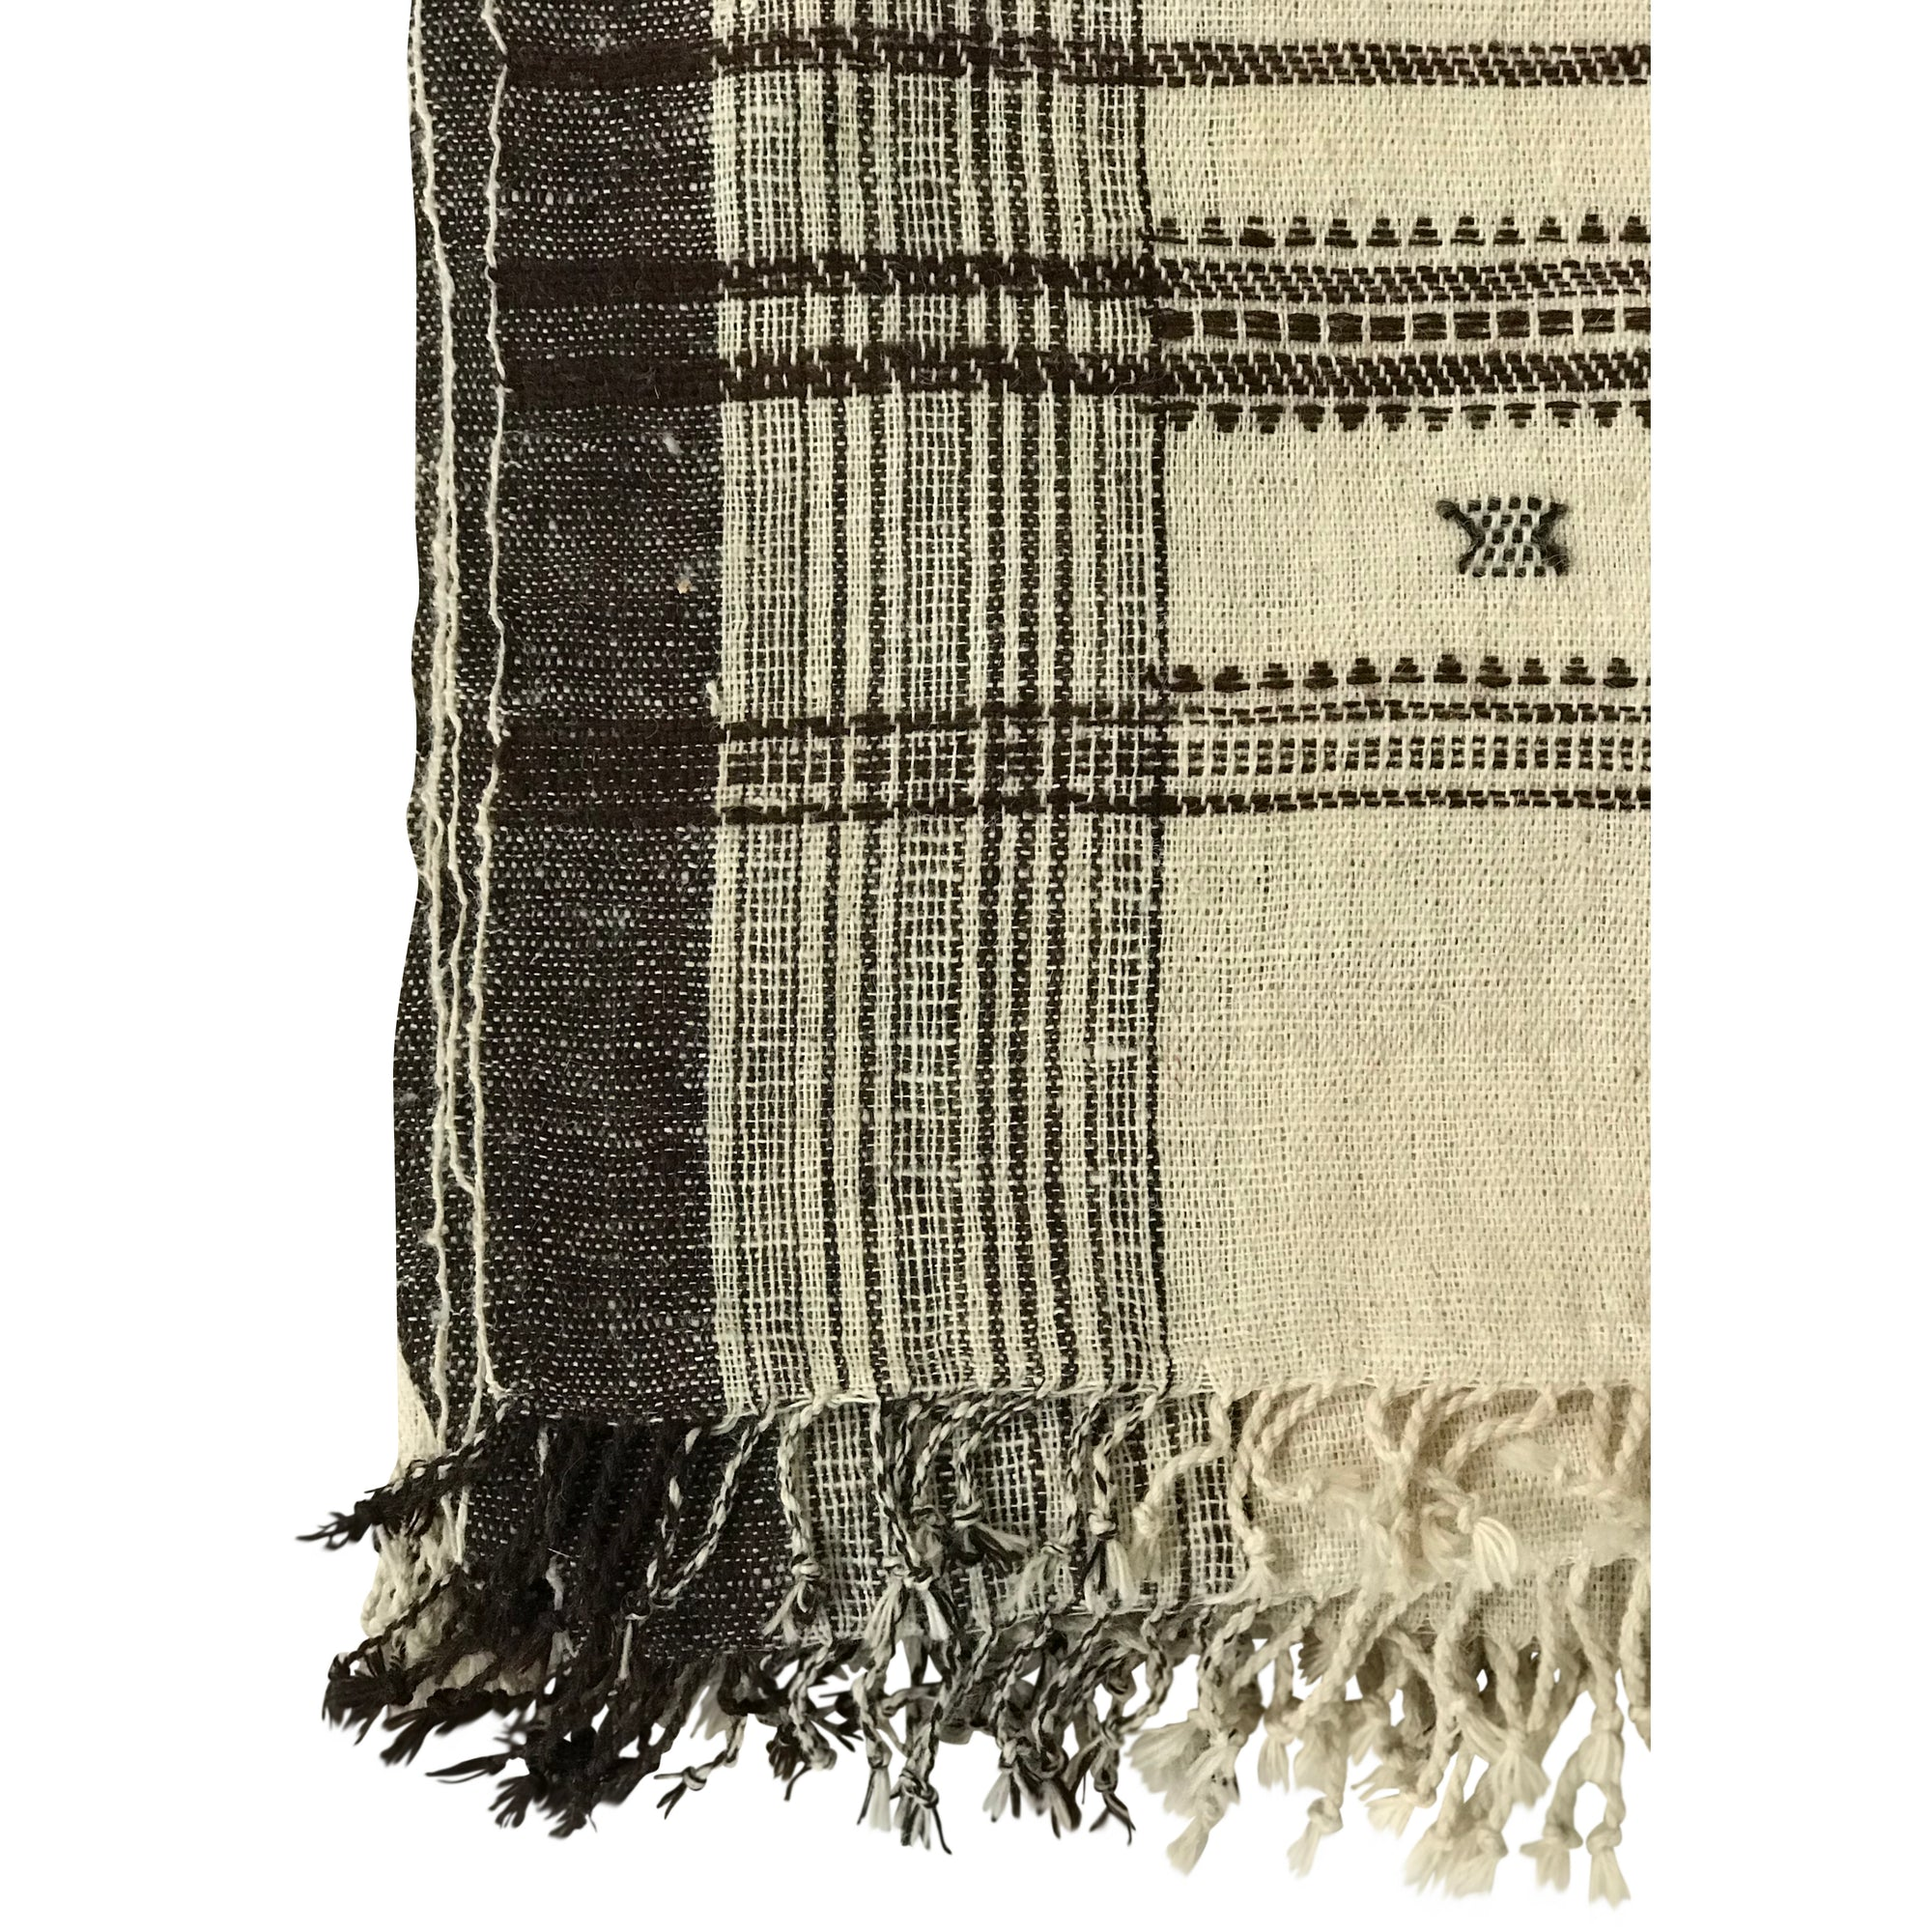 Off white & Chestnut wool bedcover hand woven in India greige design shop + interiors boho chick interior design